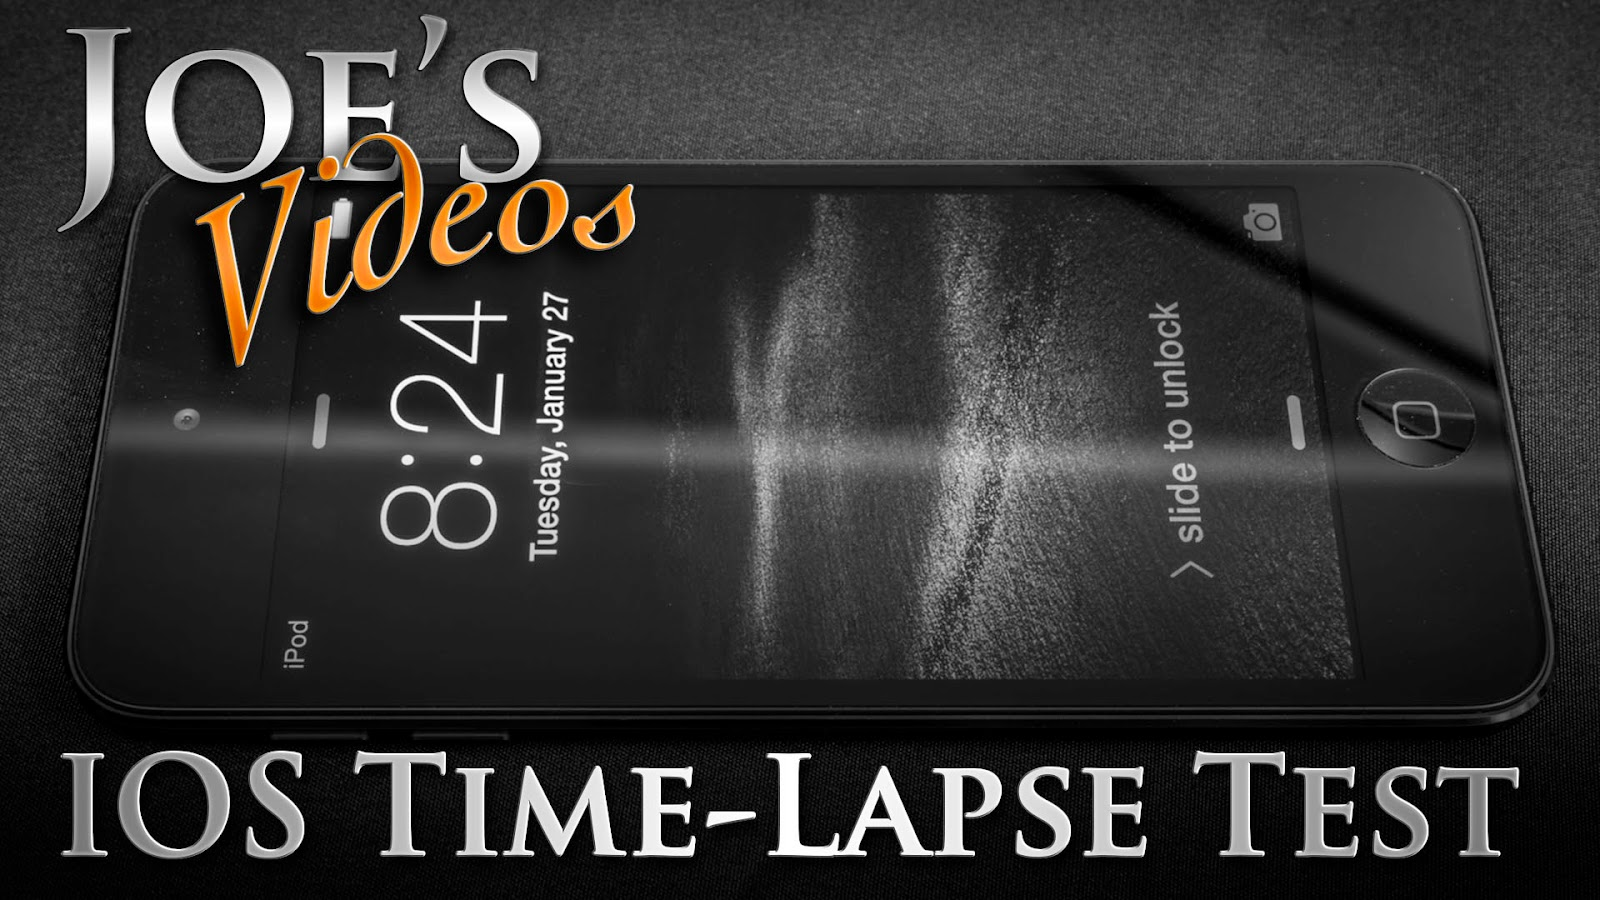 Playing Around With Testing The IOS Time-Lapse Function (With Test Footage) | Joe's Videos